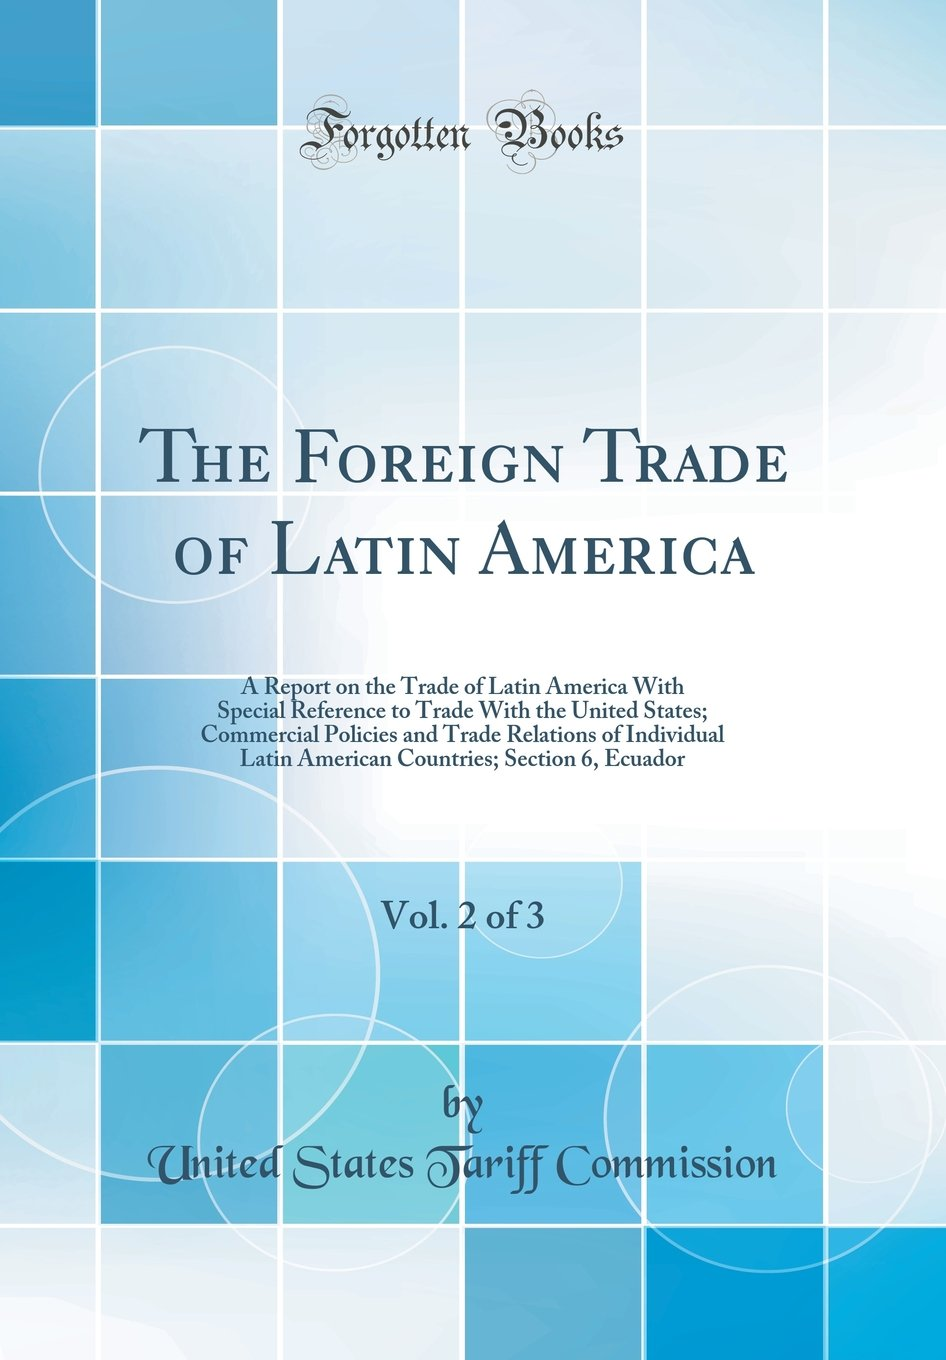 The Foreign Trade of Latin America, Vol. 2 of 3: A Report on the Trade of Latin America With Special Reference to Trade With the United States; ... Latin American Countries; Section 6, Ecuador